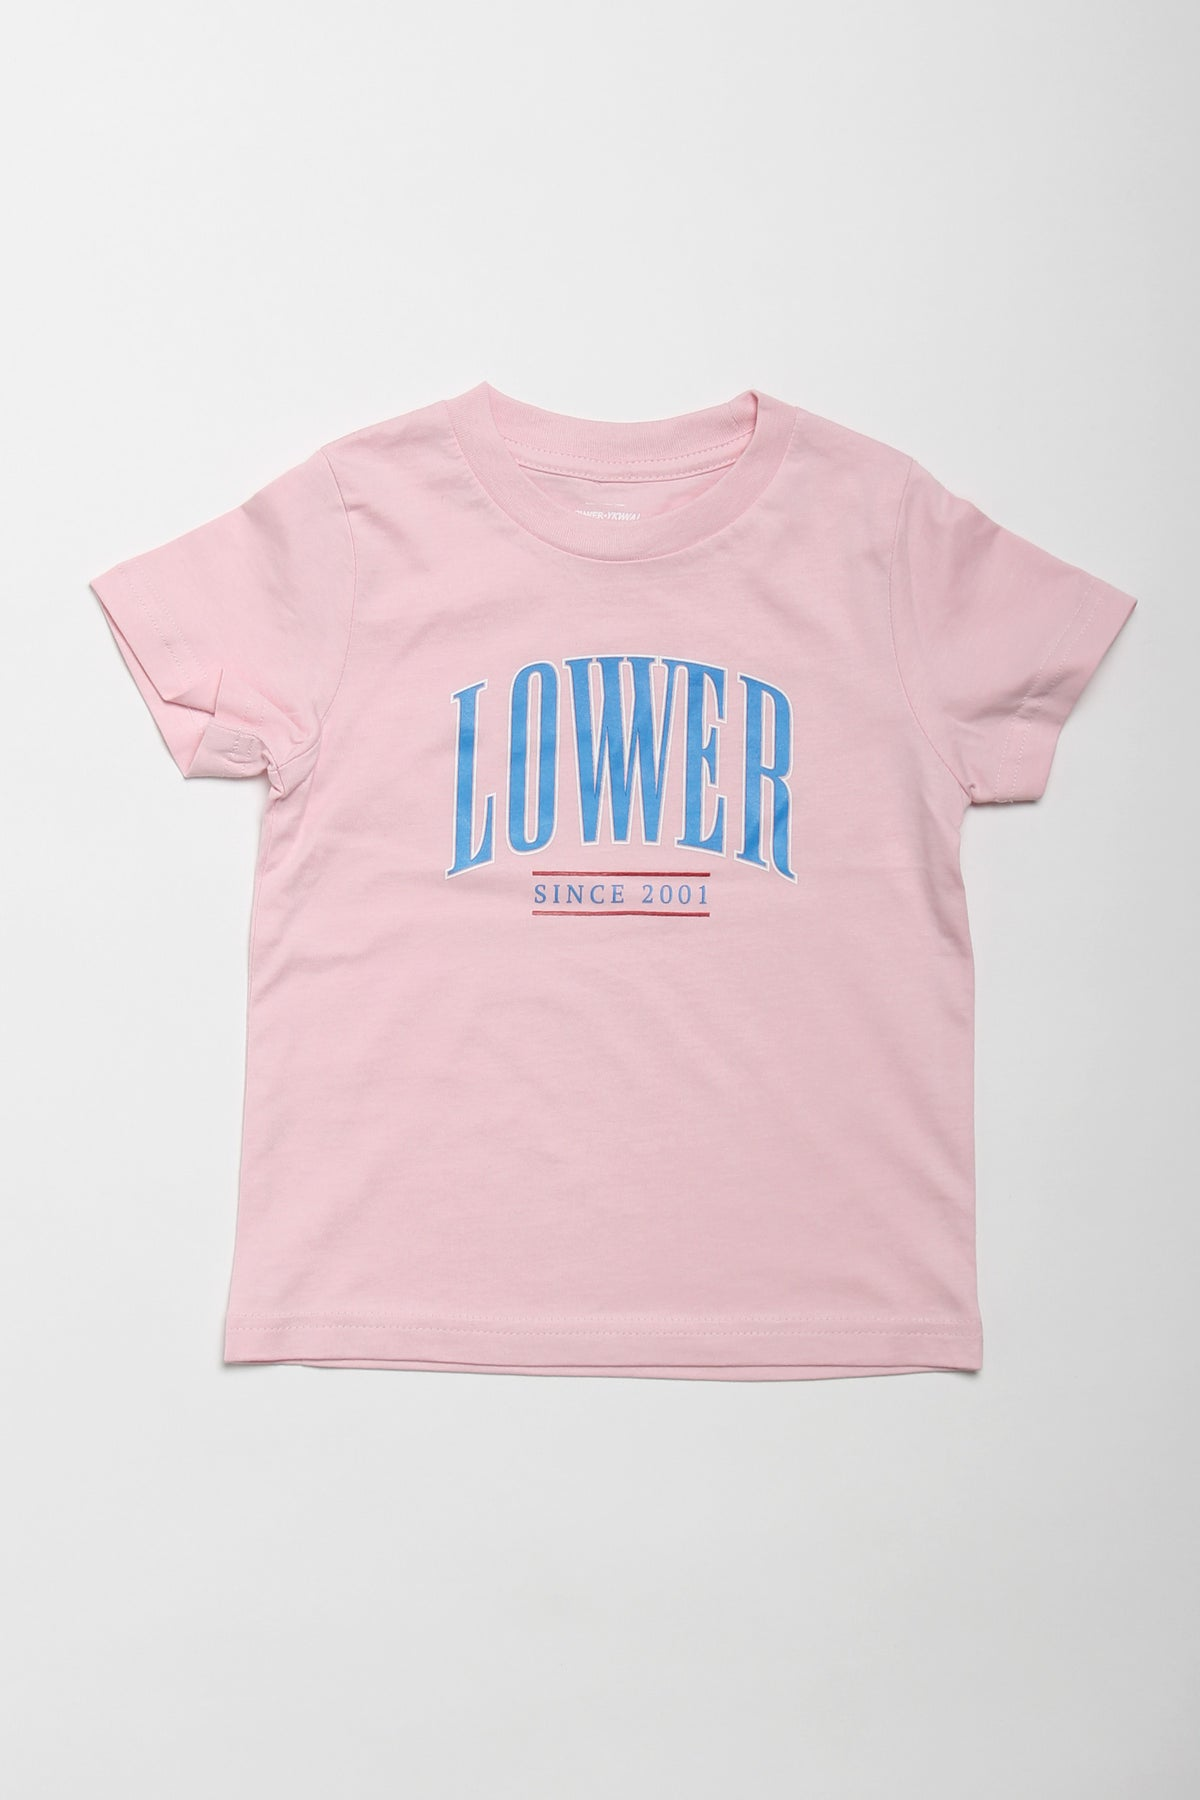 Maize Kids/Youth Tee - Pink